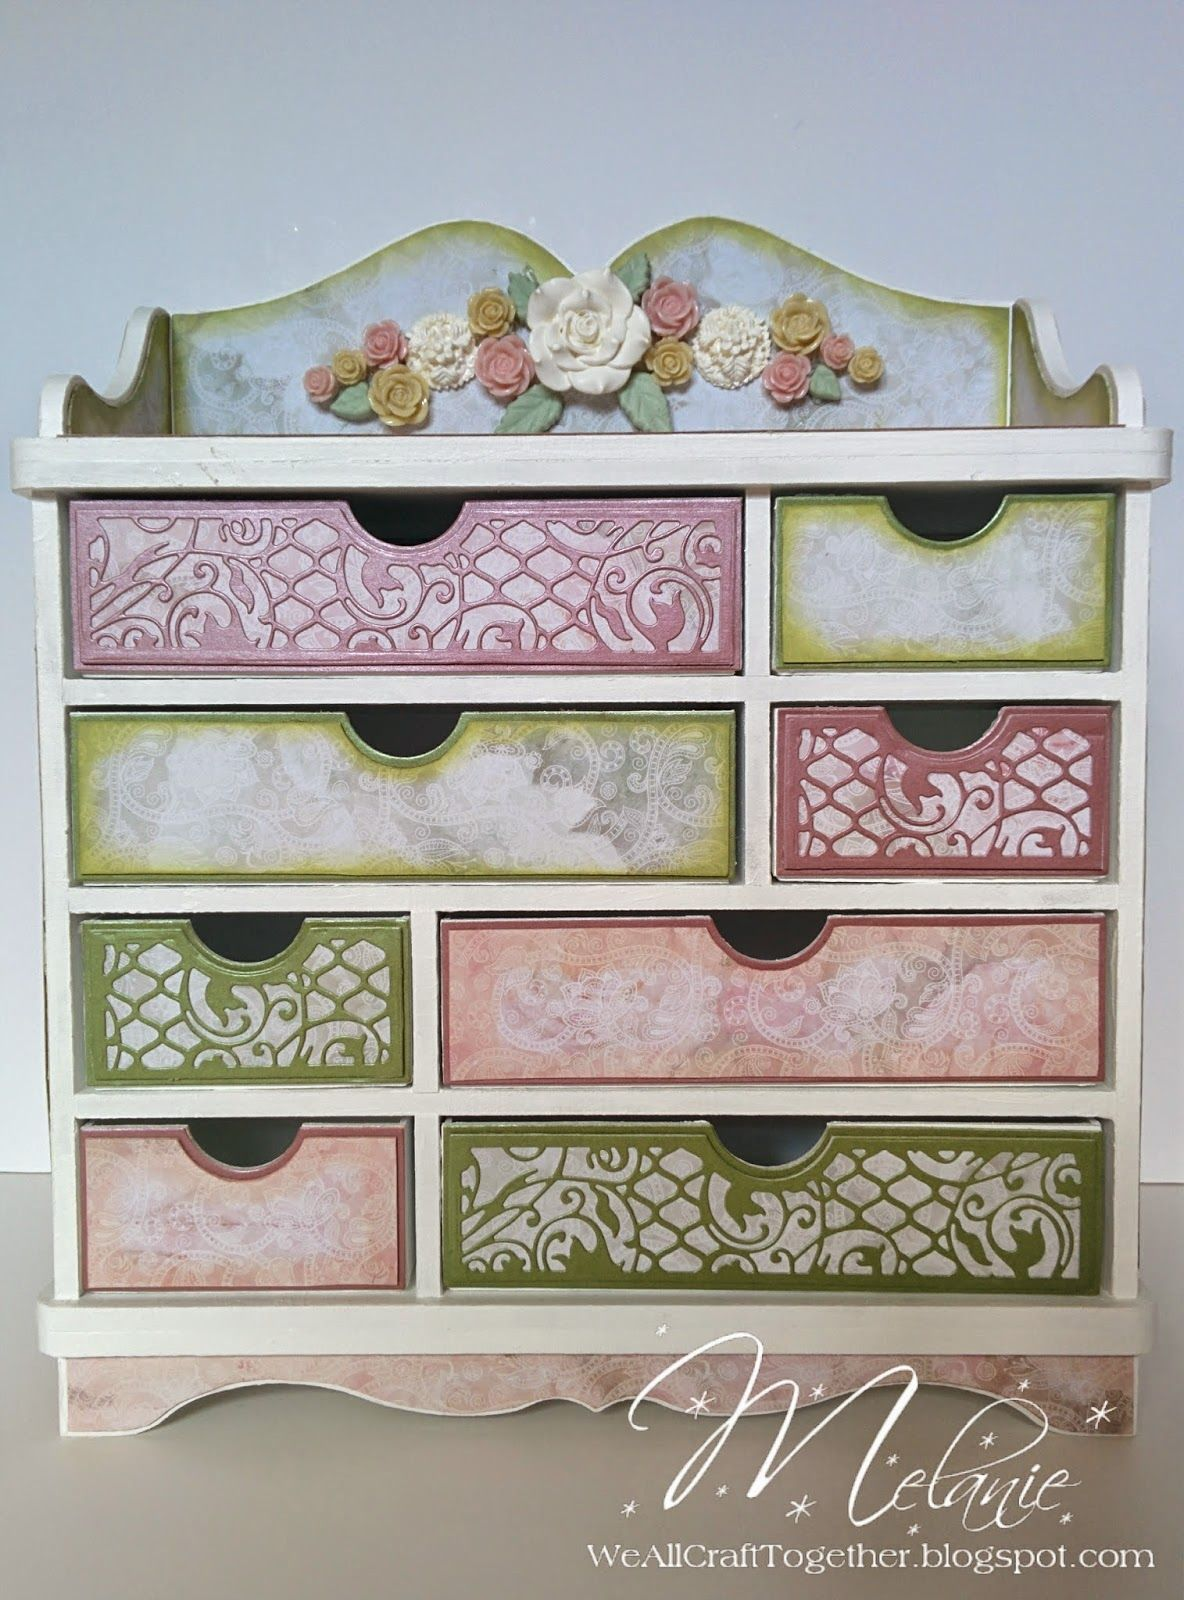 We All Craft Together ...: Tonic Verona Storage Unit and Memory Book for Mums 80th